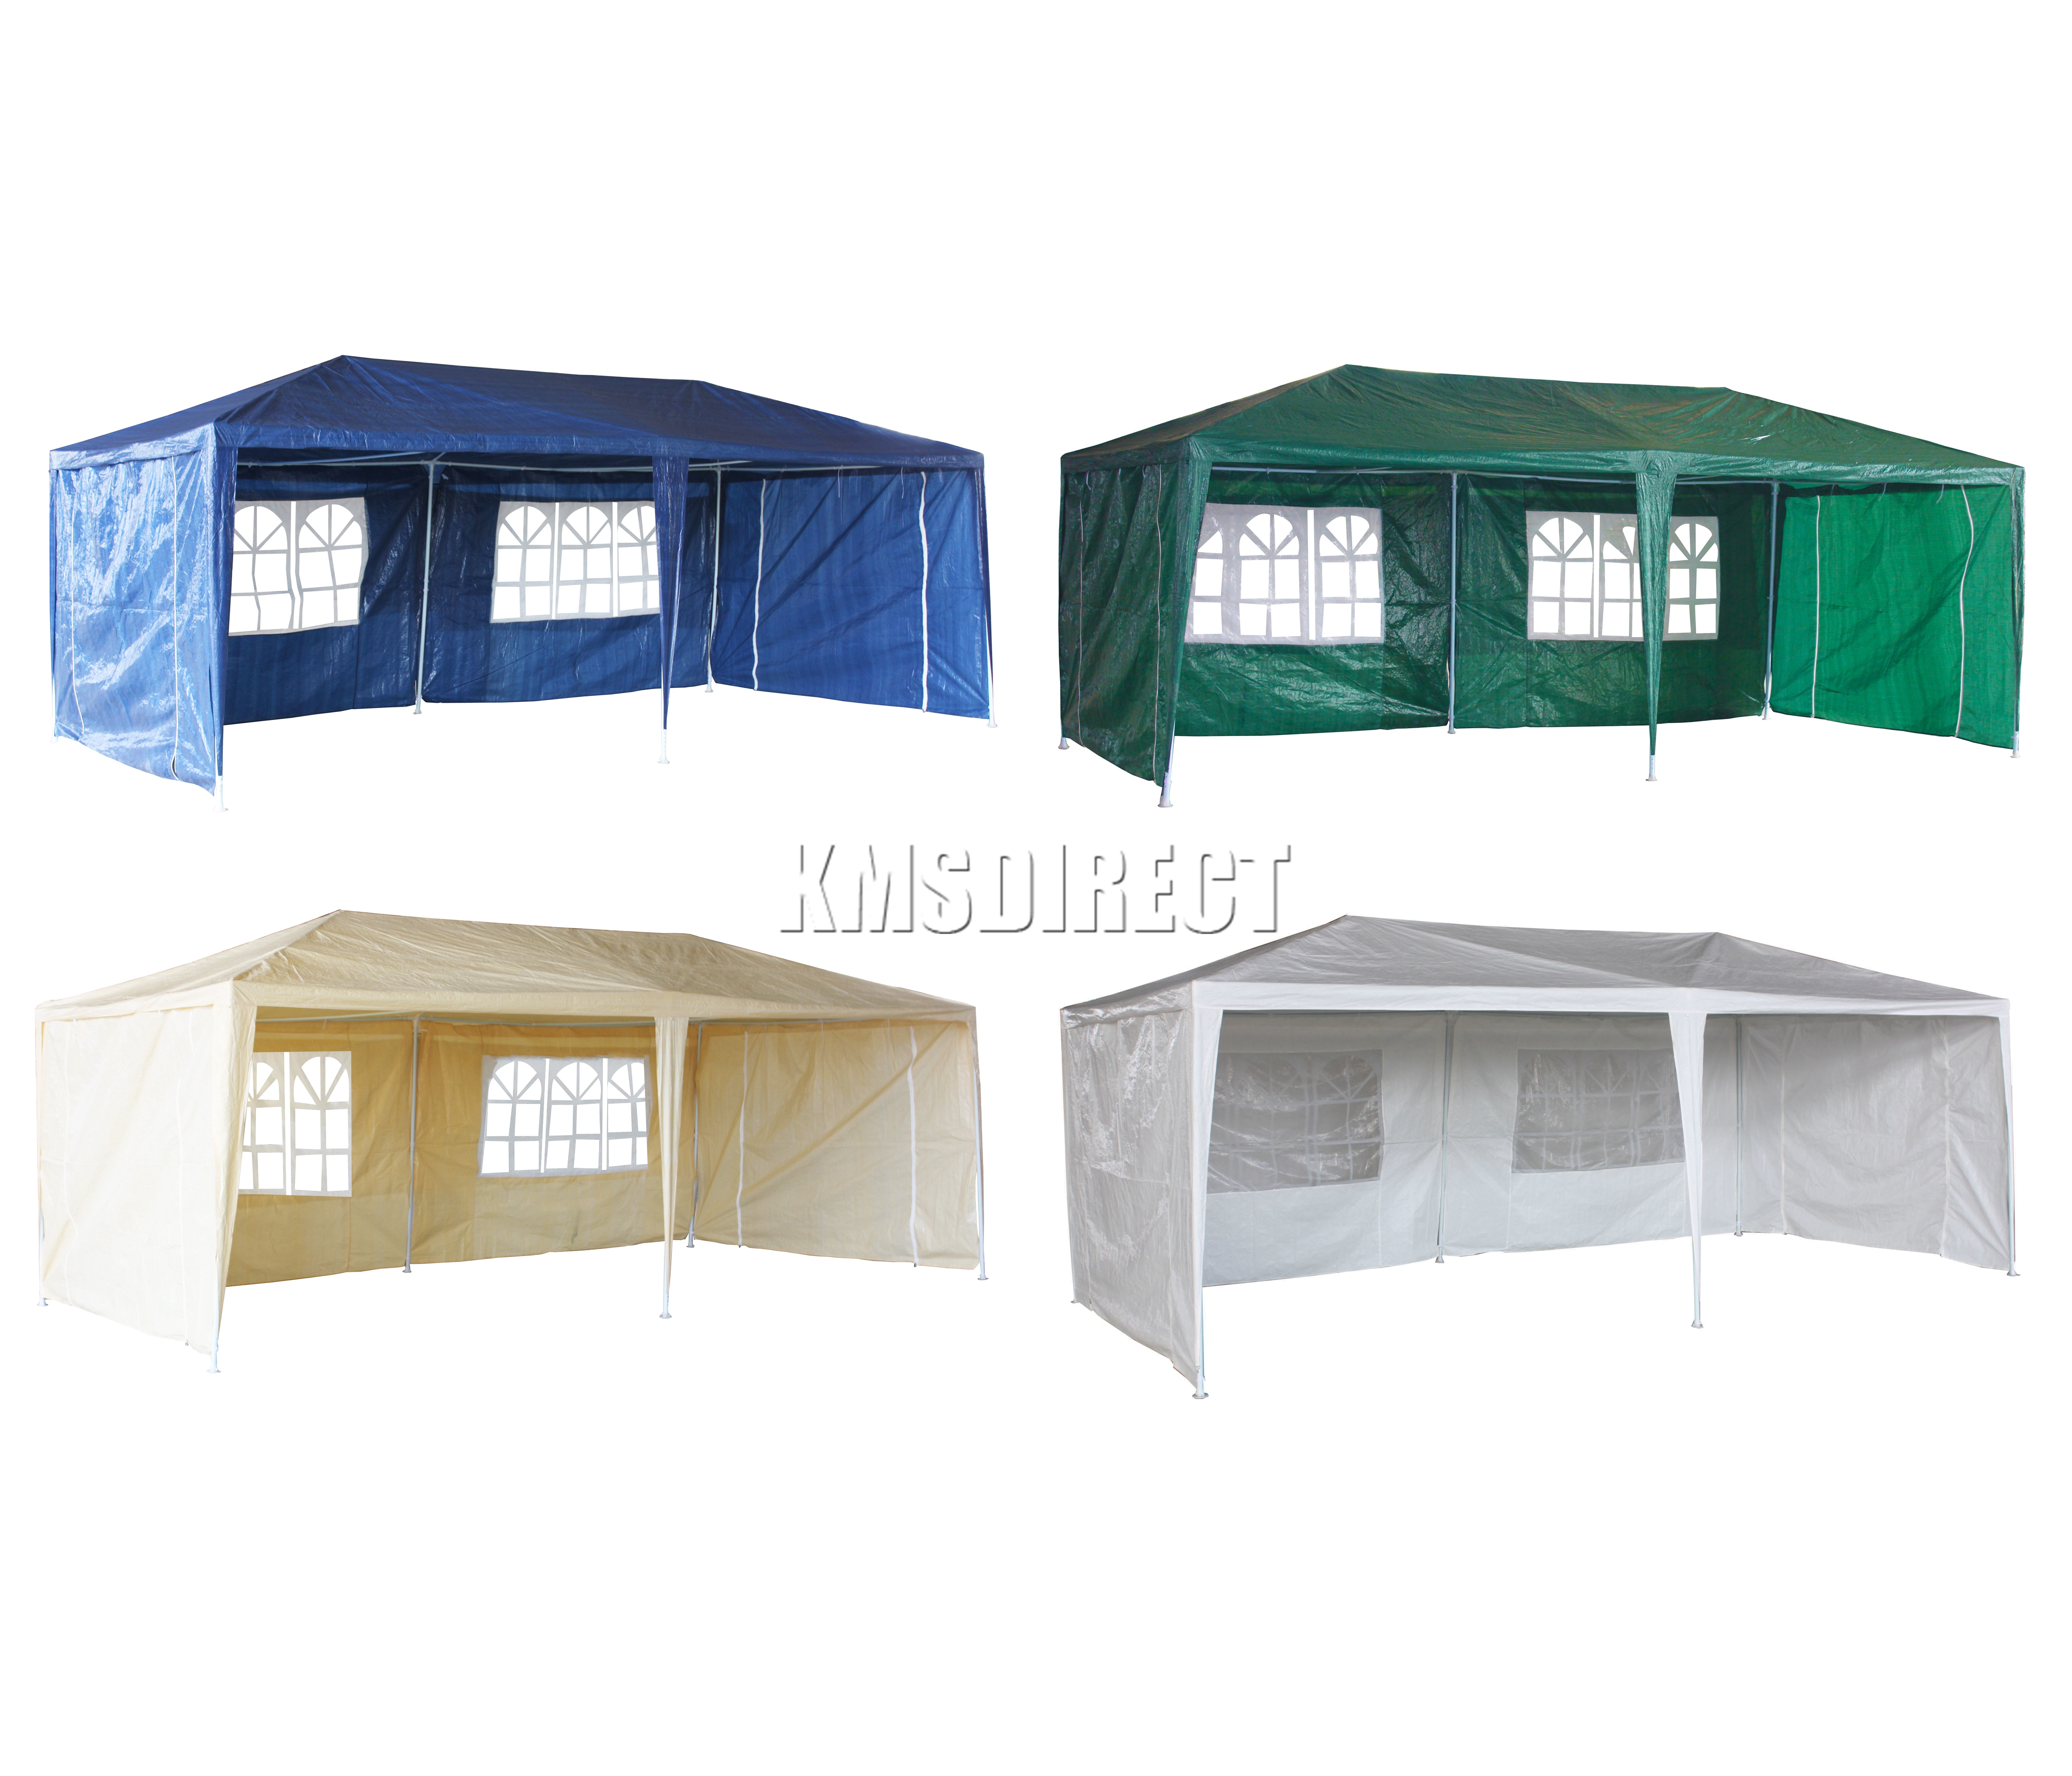 foxhunter 3mx3m 4m 6m 9m pe gartenlaube 130g wasserfest garten markise ebay. Black Bedroom Furniture Sets. Home Design Ideas